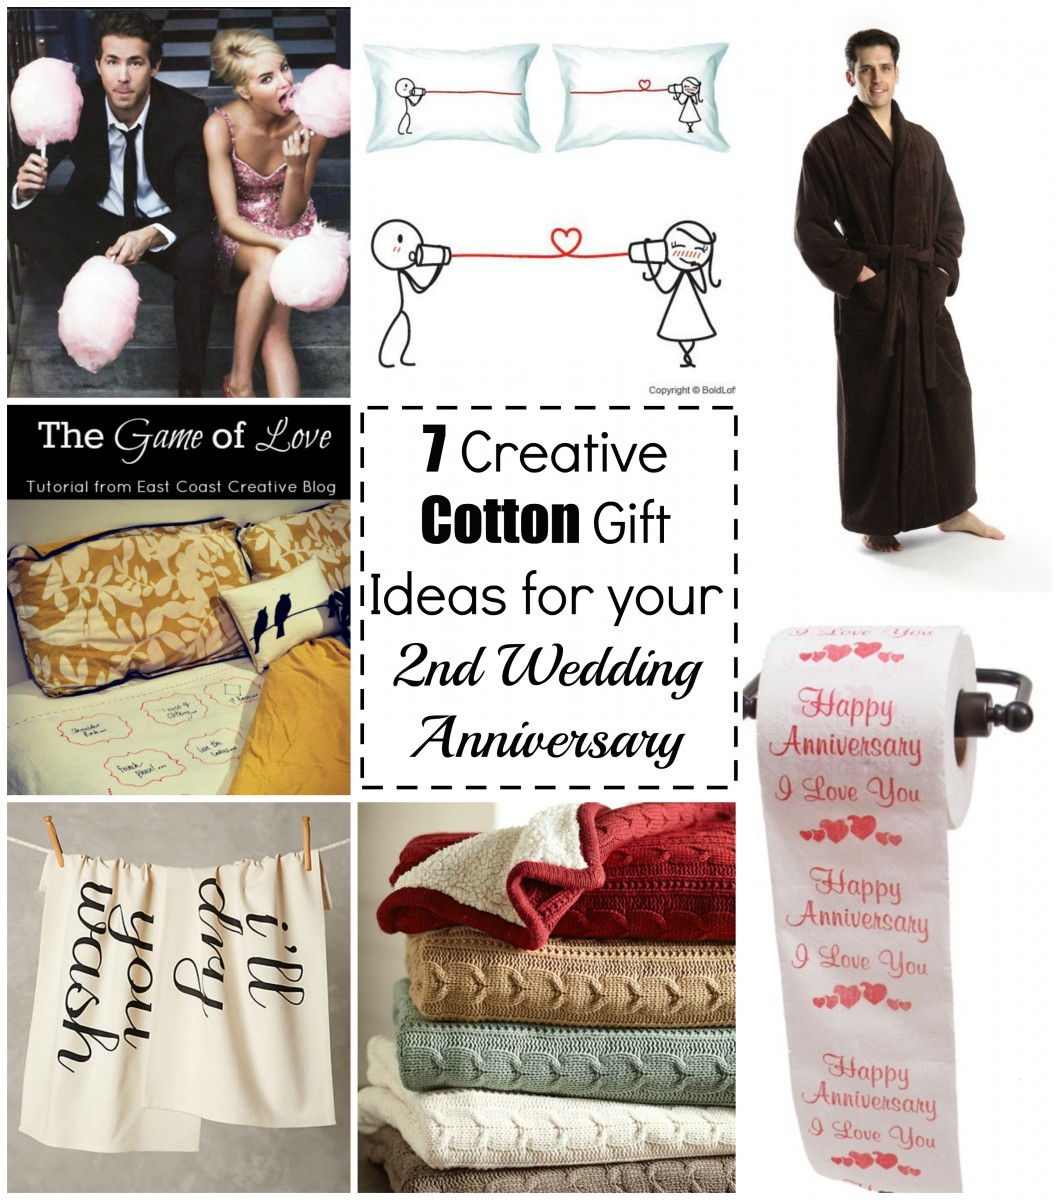 2nd Wedding Anniversary Gifts Cotton For Her : creative cotton gift ideas for your 2nd wedding anniversary her ...